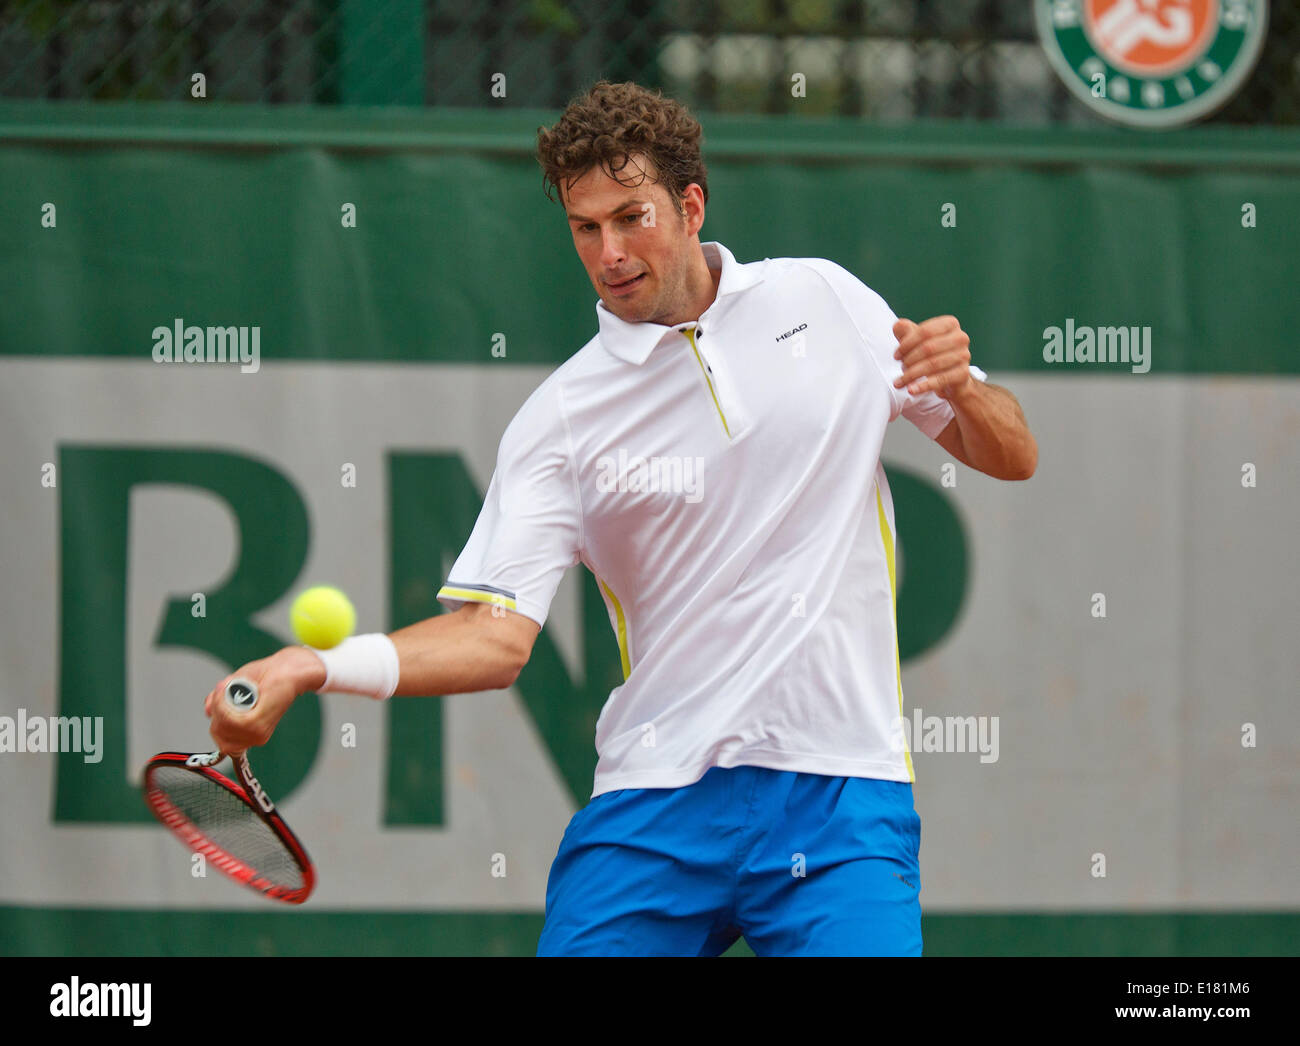 France, Paris, 26.05.2014. Tennis, Roland Garros, Robin Haase (NED) in action in his match against Nicolay Davydenko (RUS)  Credit:  Henk Koster/Alamy Live News - Stock Image